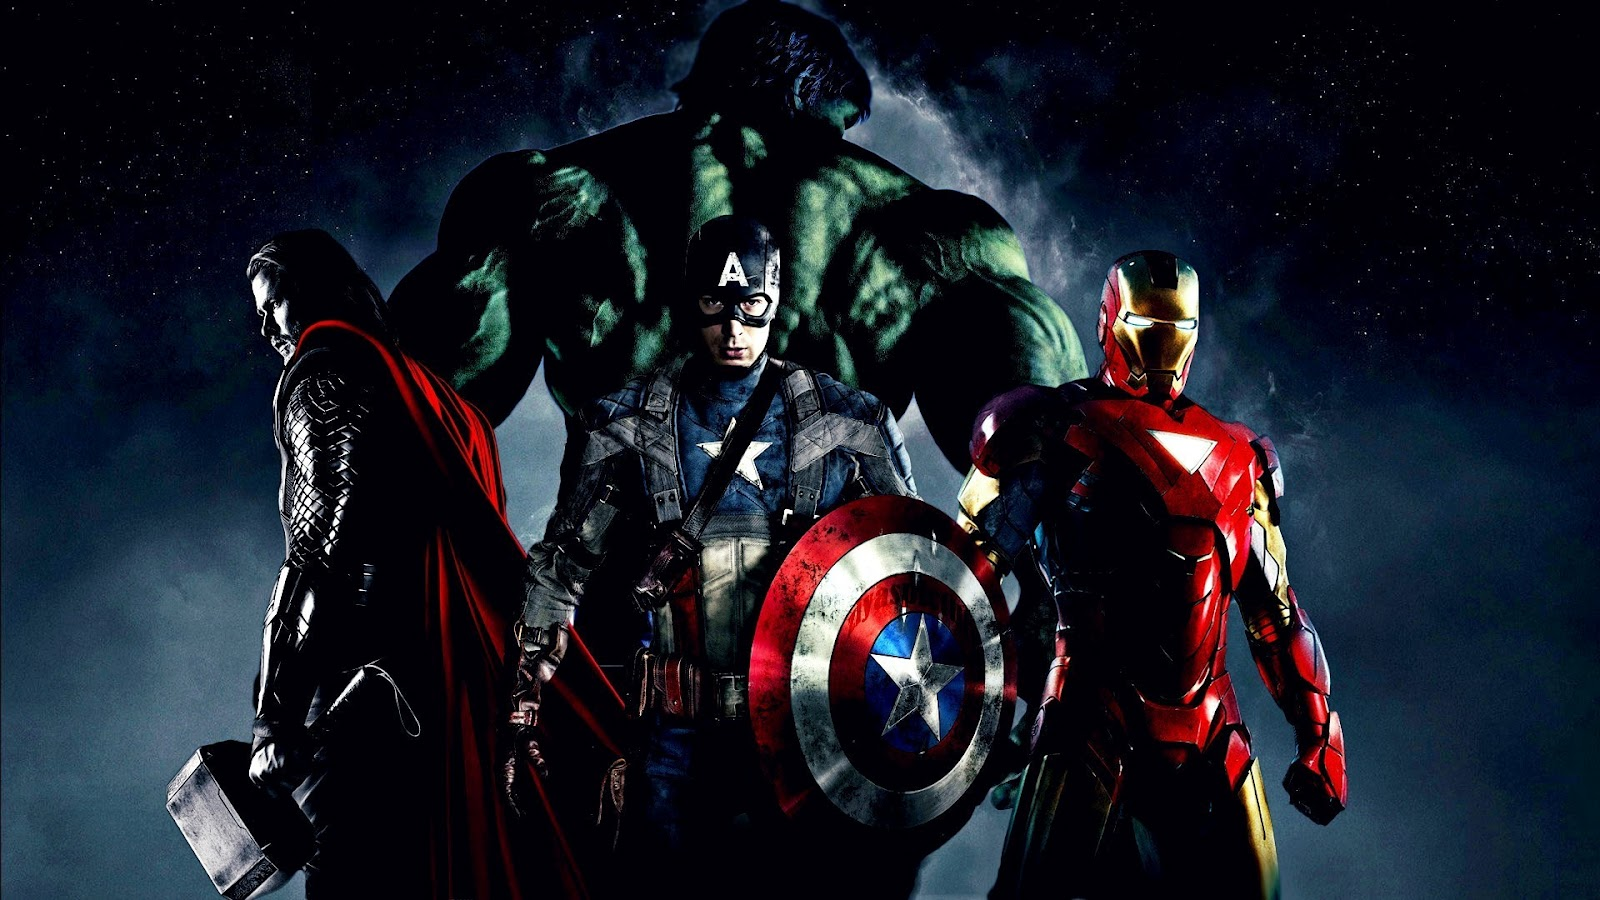 http://3.bp.blogspot.com/-xFg0GCRPeC0/T9AlkwcUO4I/AAAAAAAAAAM/vqTG2CByjSw/s1600/The_Avengers_2012_Thor_Captain_America_Hulk_and_Iron_Man_HD_Wallpaper-Vvallpaper.Net.jpg